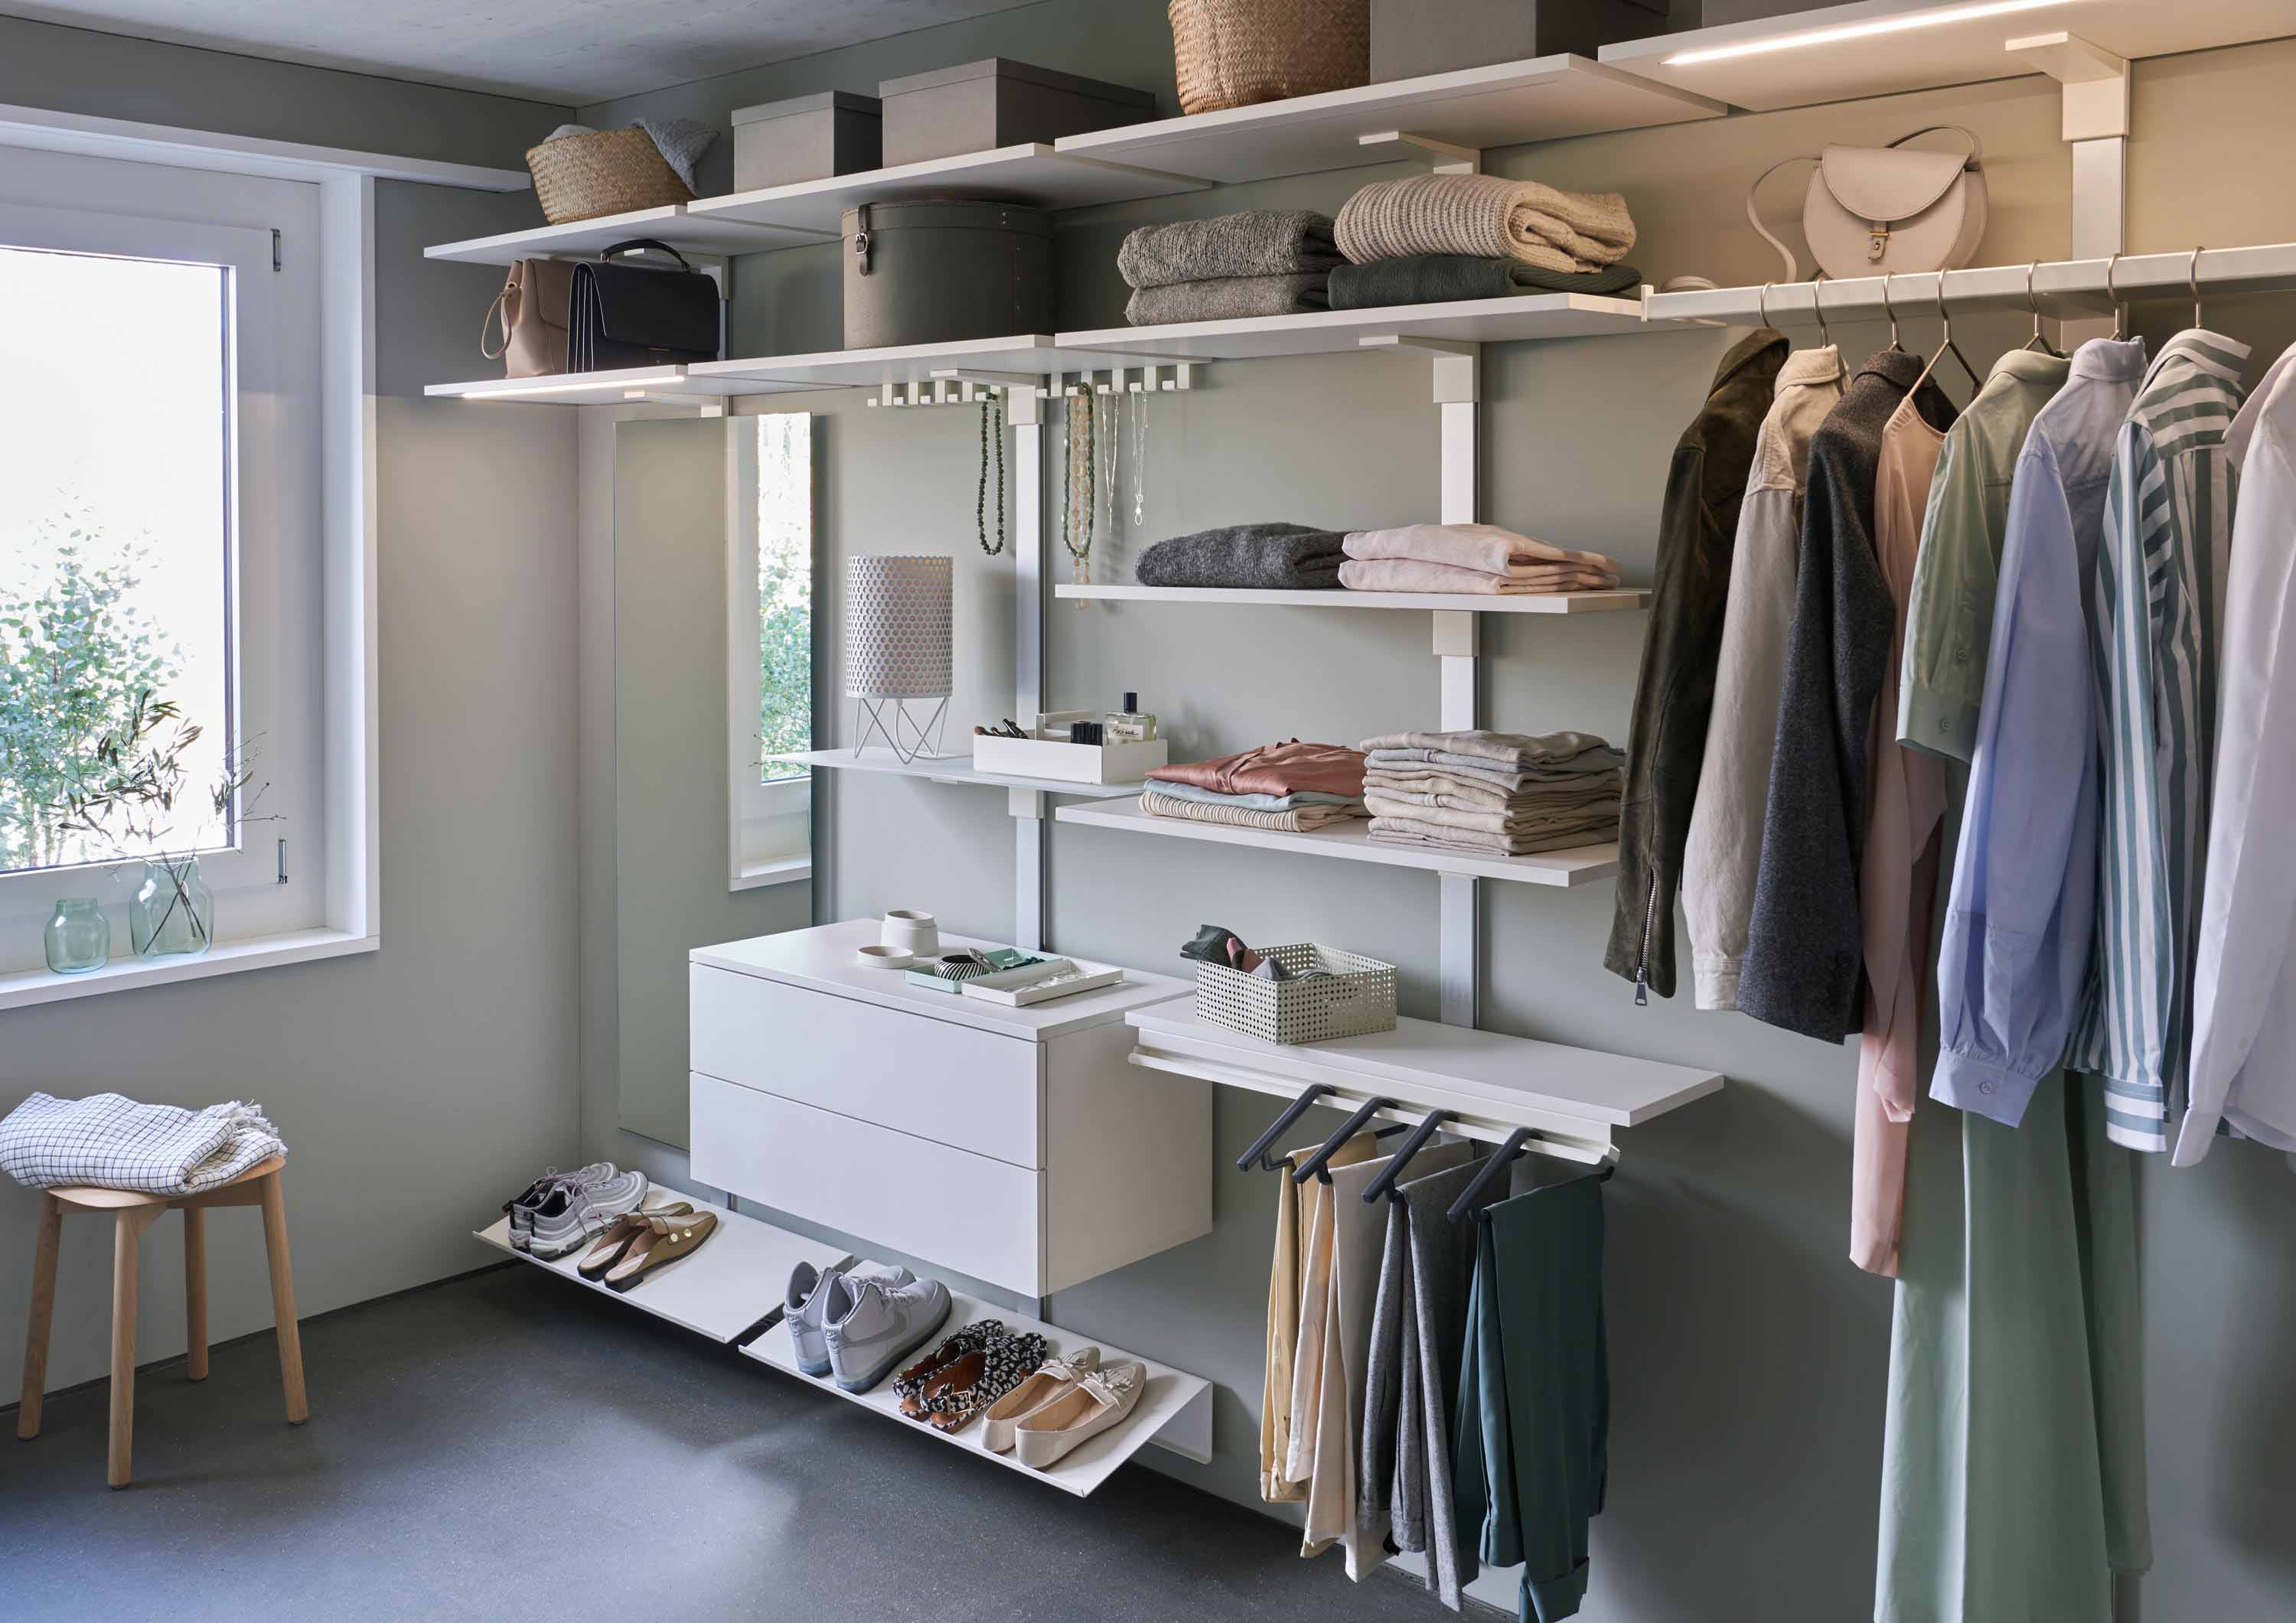 PECASA DRESSING - The dressing room: optimum use of space and crease-free clothes